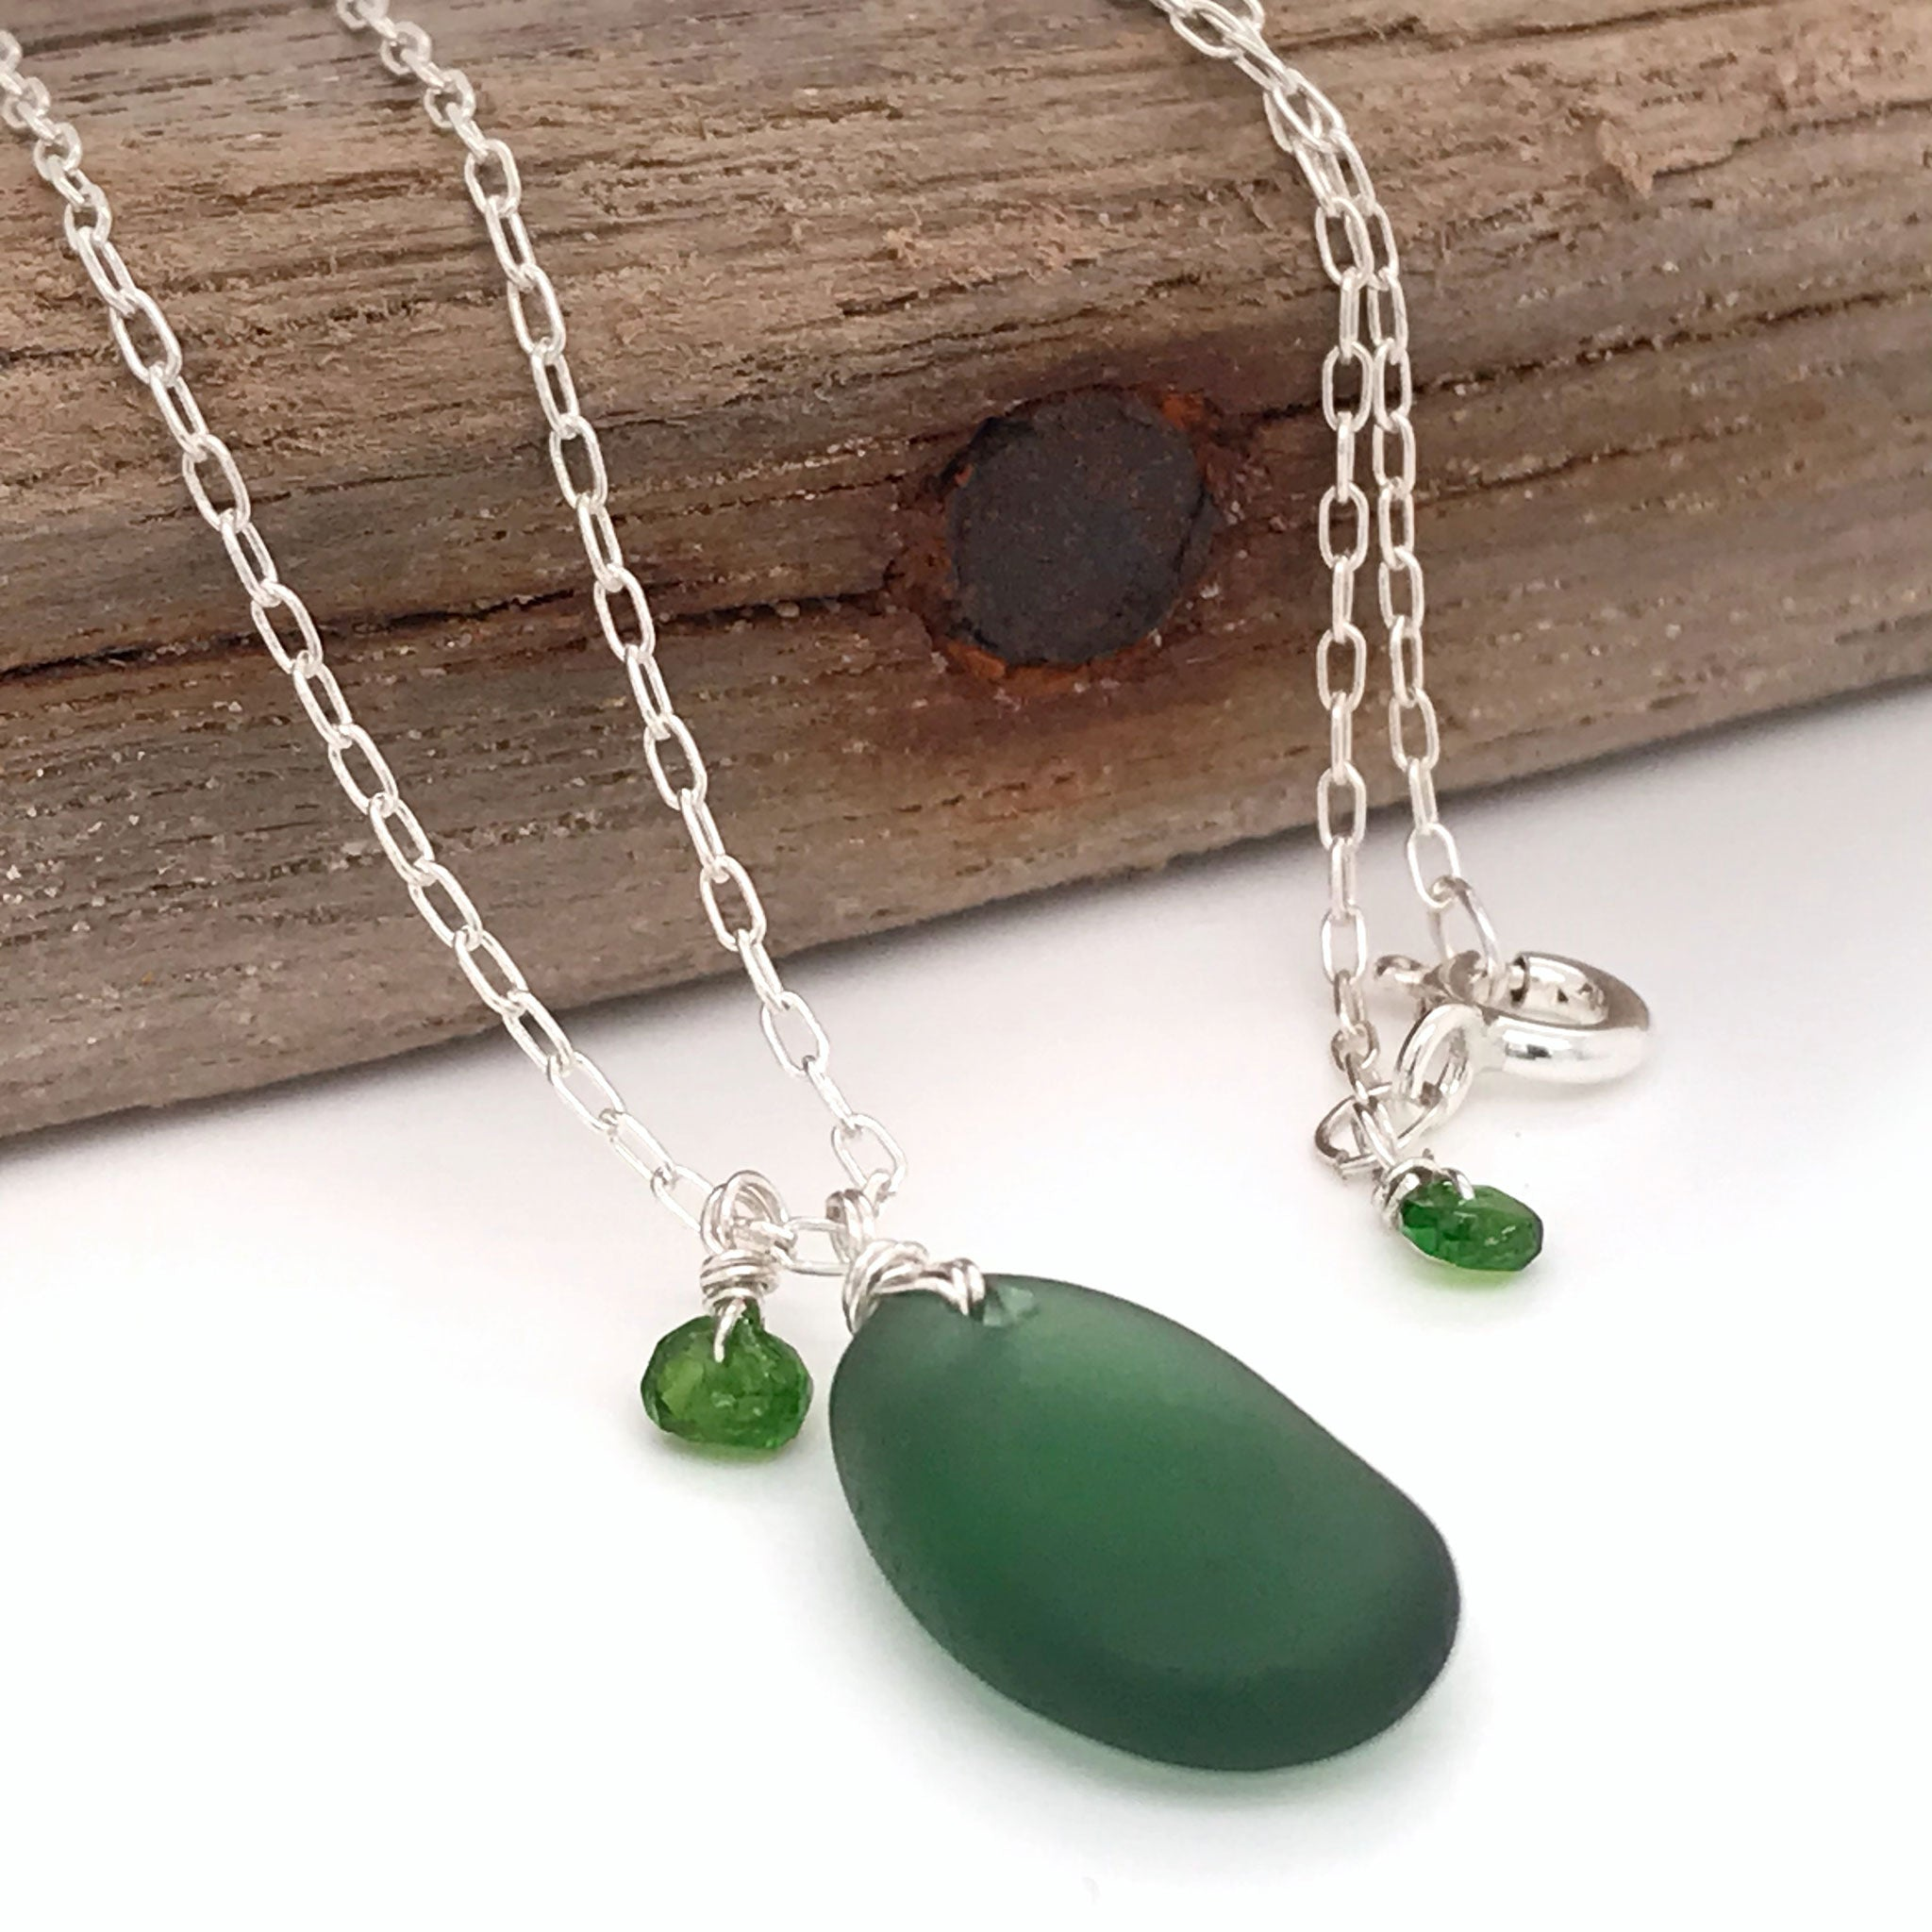 green seaglass necklace sterling silver with tsavorite stones kriket Broadhurst jewellery